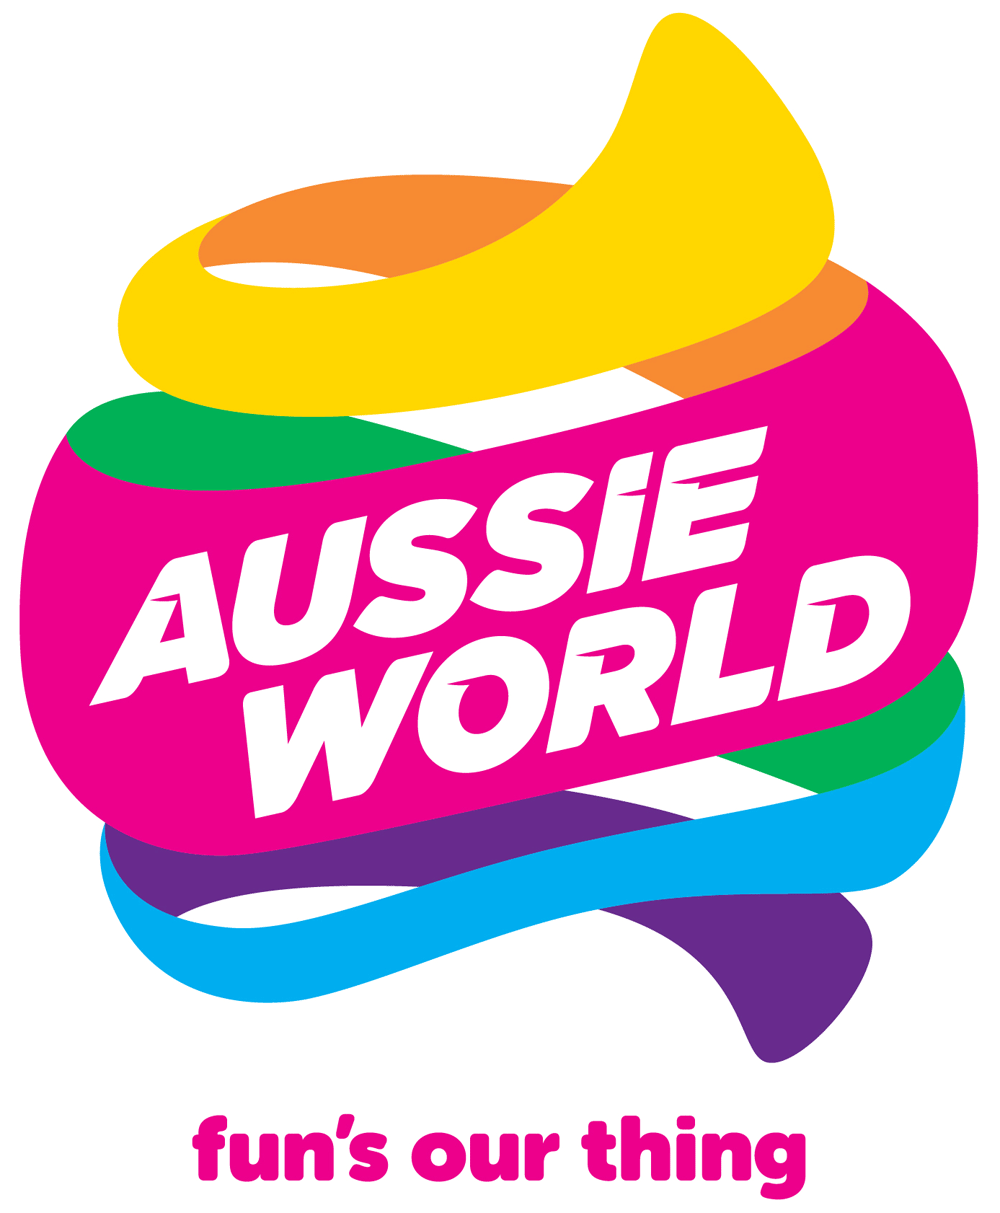 brand new new logo for aussie world by brother